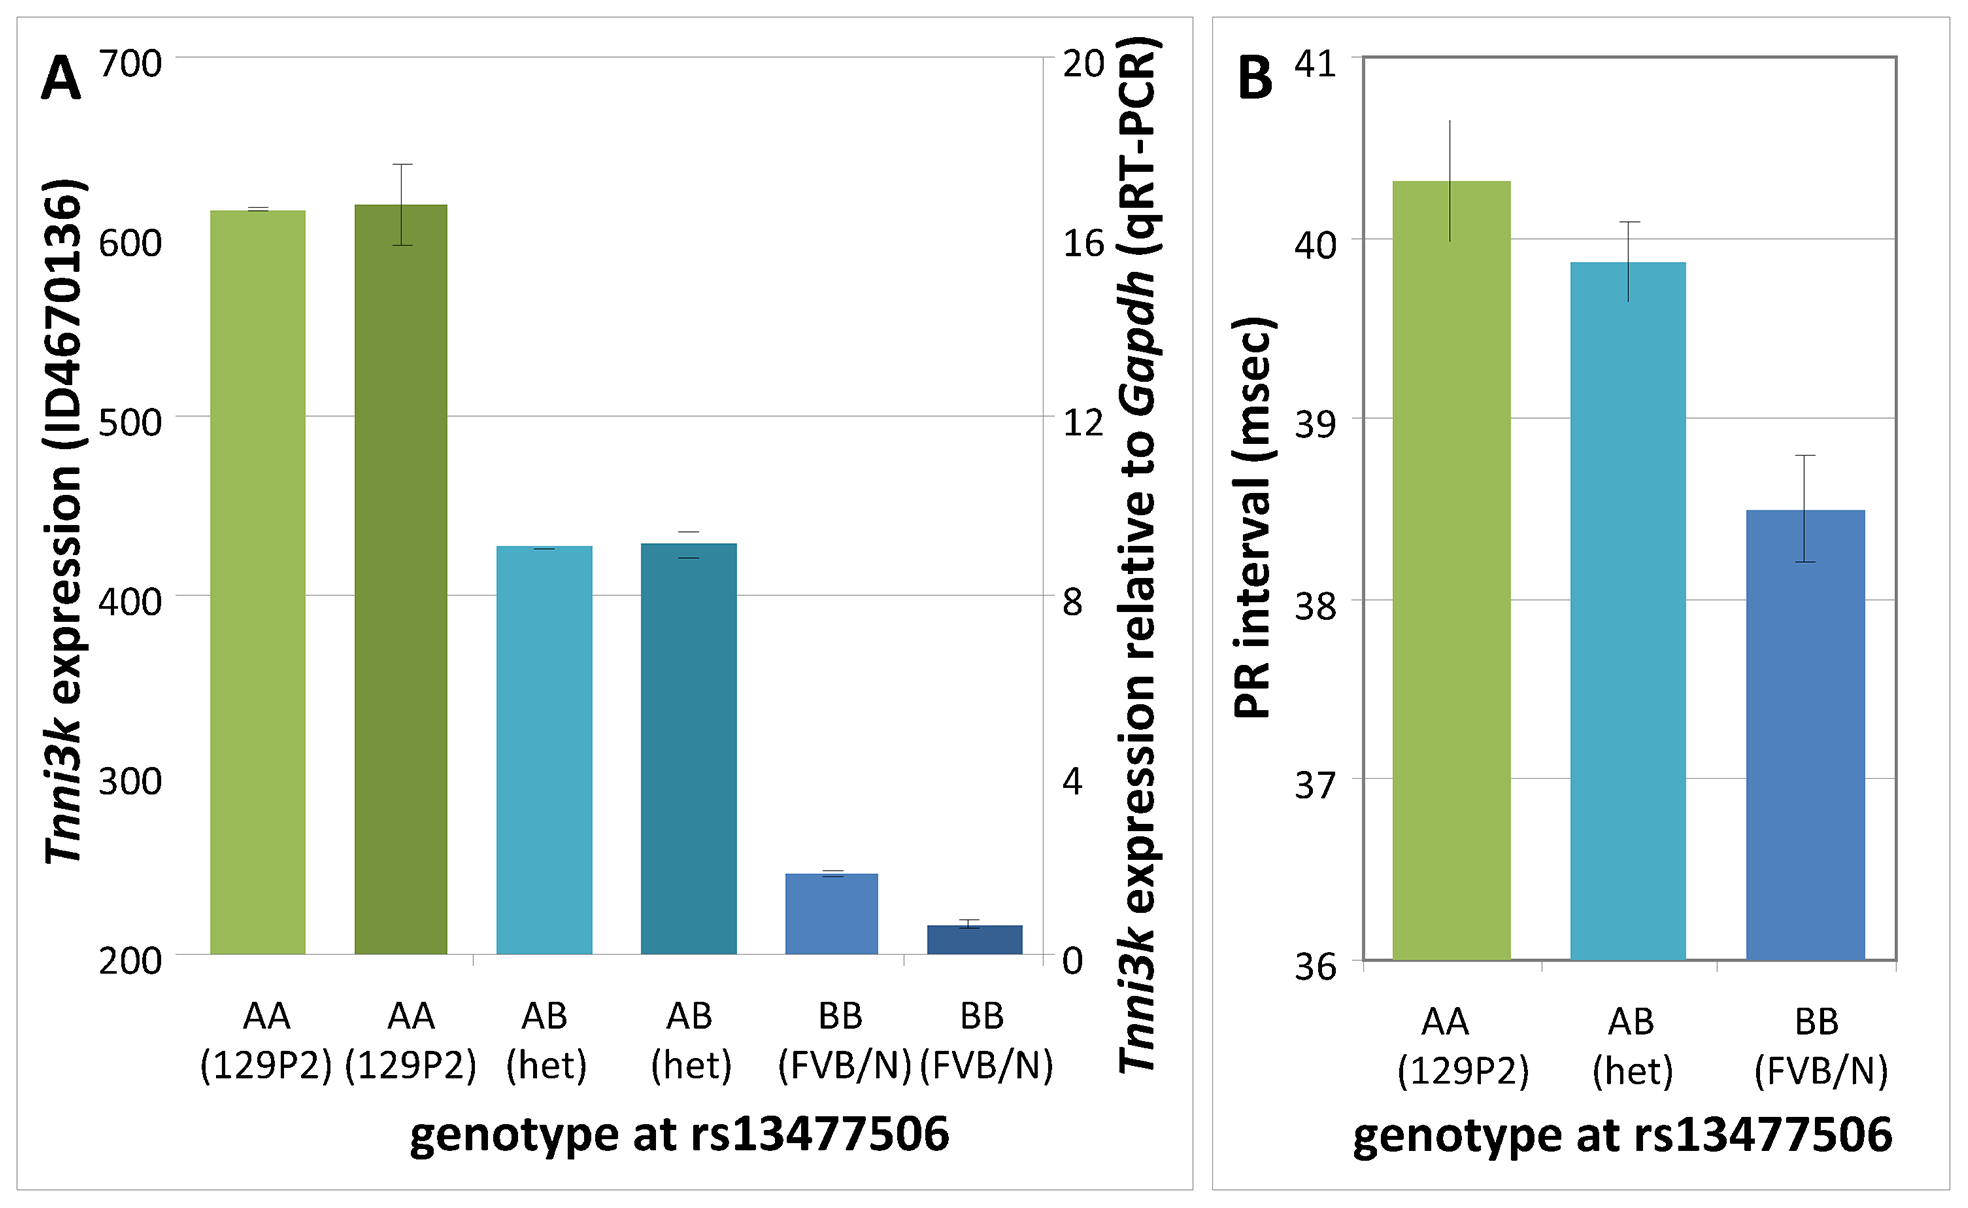 Genotype effects at rs13477506.